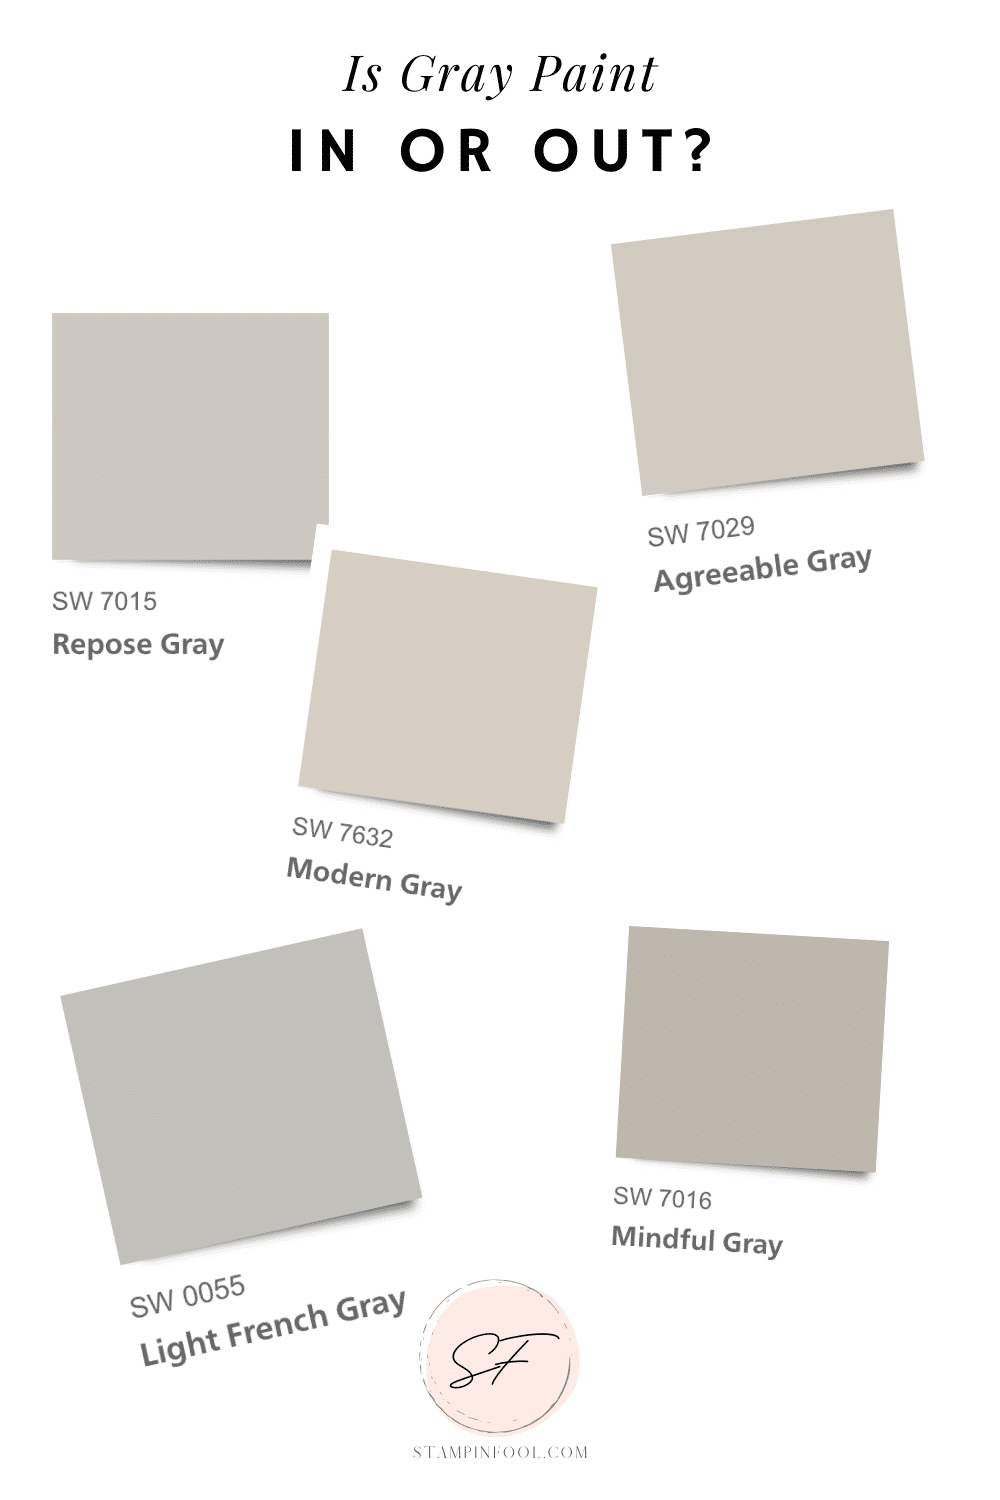 IS GRAY PAINT IN OR OUT? HERE'S WHAT 200 HOME DECOR ENTHUSIASTS HAVE TO SAY